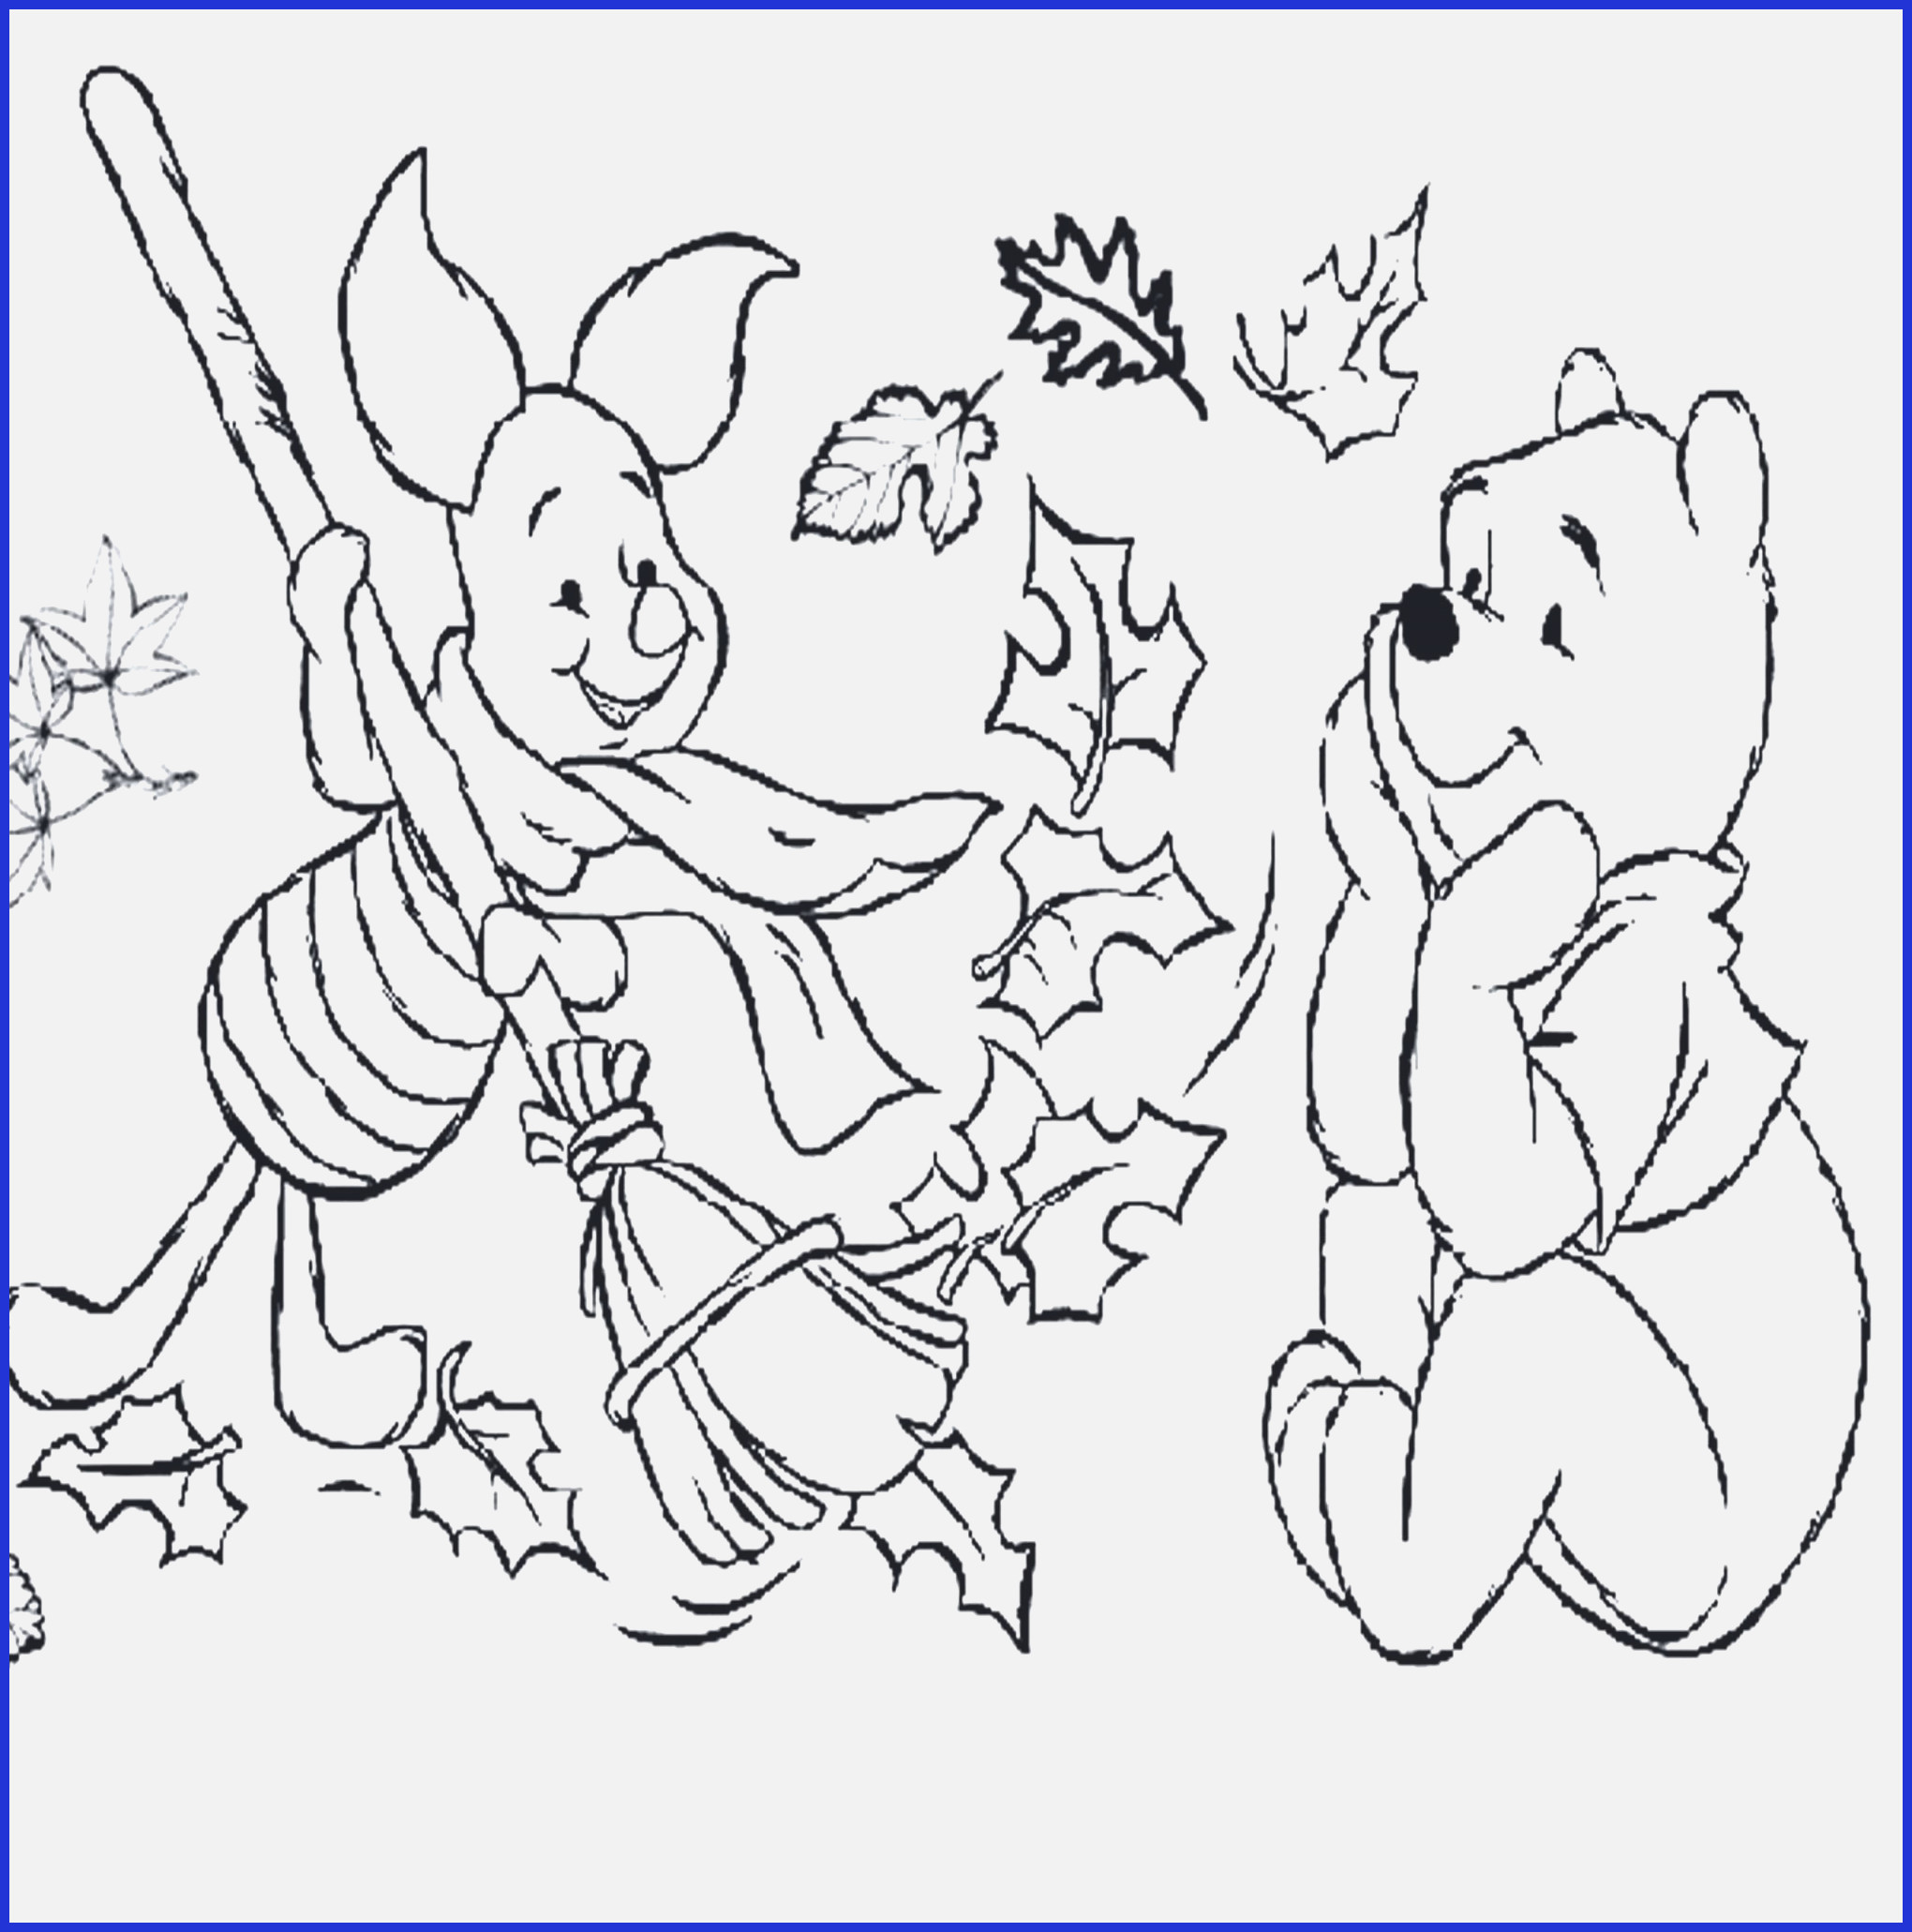 The Simpsons Coloring Pages The Simpsons Coloring Pages Picture Colouring Wwwgsfl